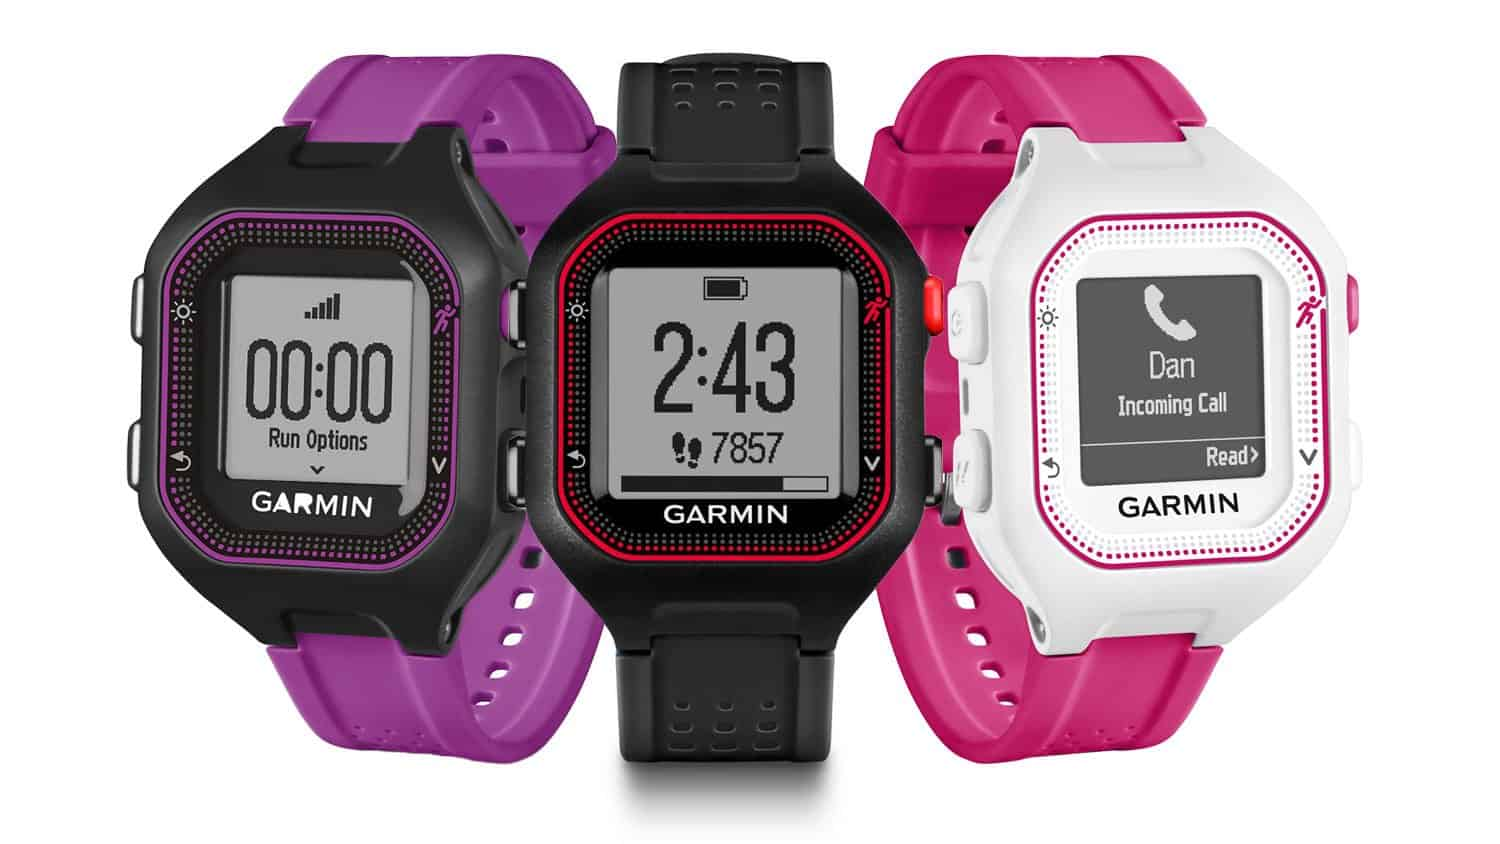 Garmin Forerunner 25 Review